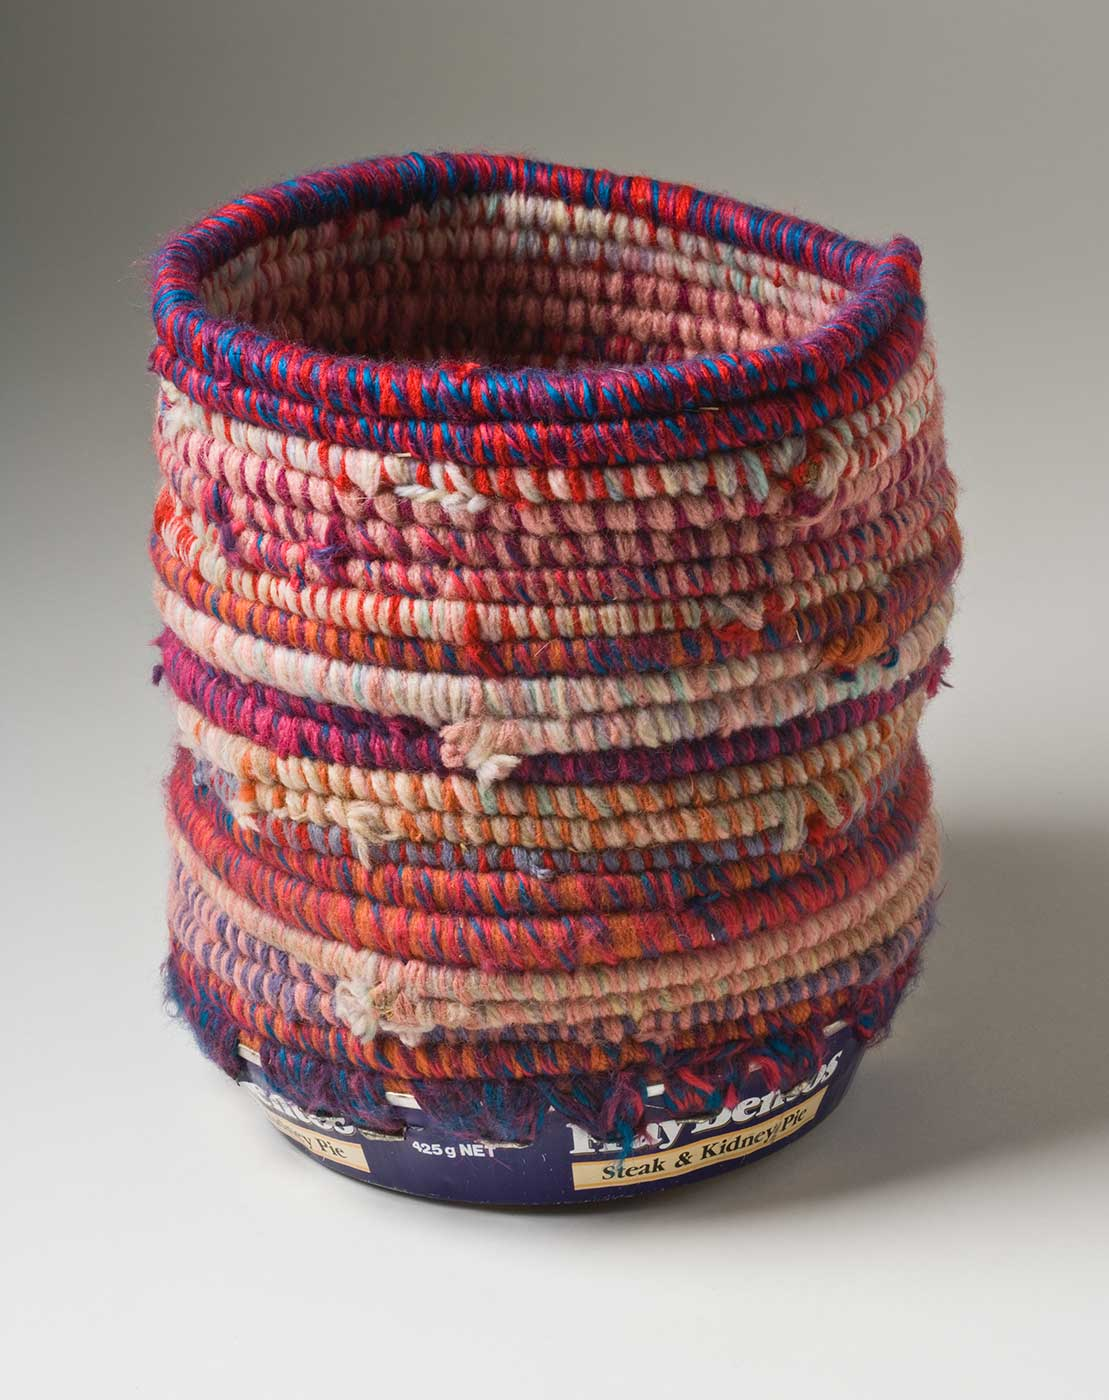 A cylindrical coiled multicoloured yarn and plant fibre basket with a metal base. The coiled yarn is in colours of blue, orange, red and purple with a dominant colour of pink. The base of the basket is a blue and white coloured metal tin with burn marks to the bottom which includes the text 'Fray Bentos / Steak and Kidney Pie'. Yarn is used to attach the base to the top section through holes that have been punched in the tin. - click to view larger image